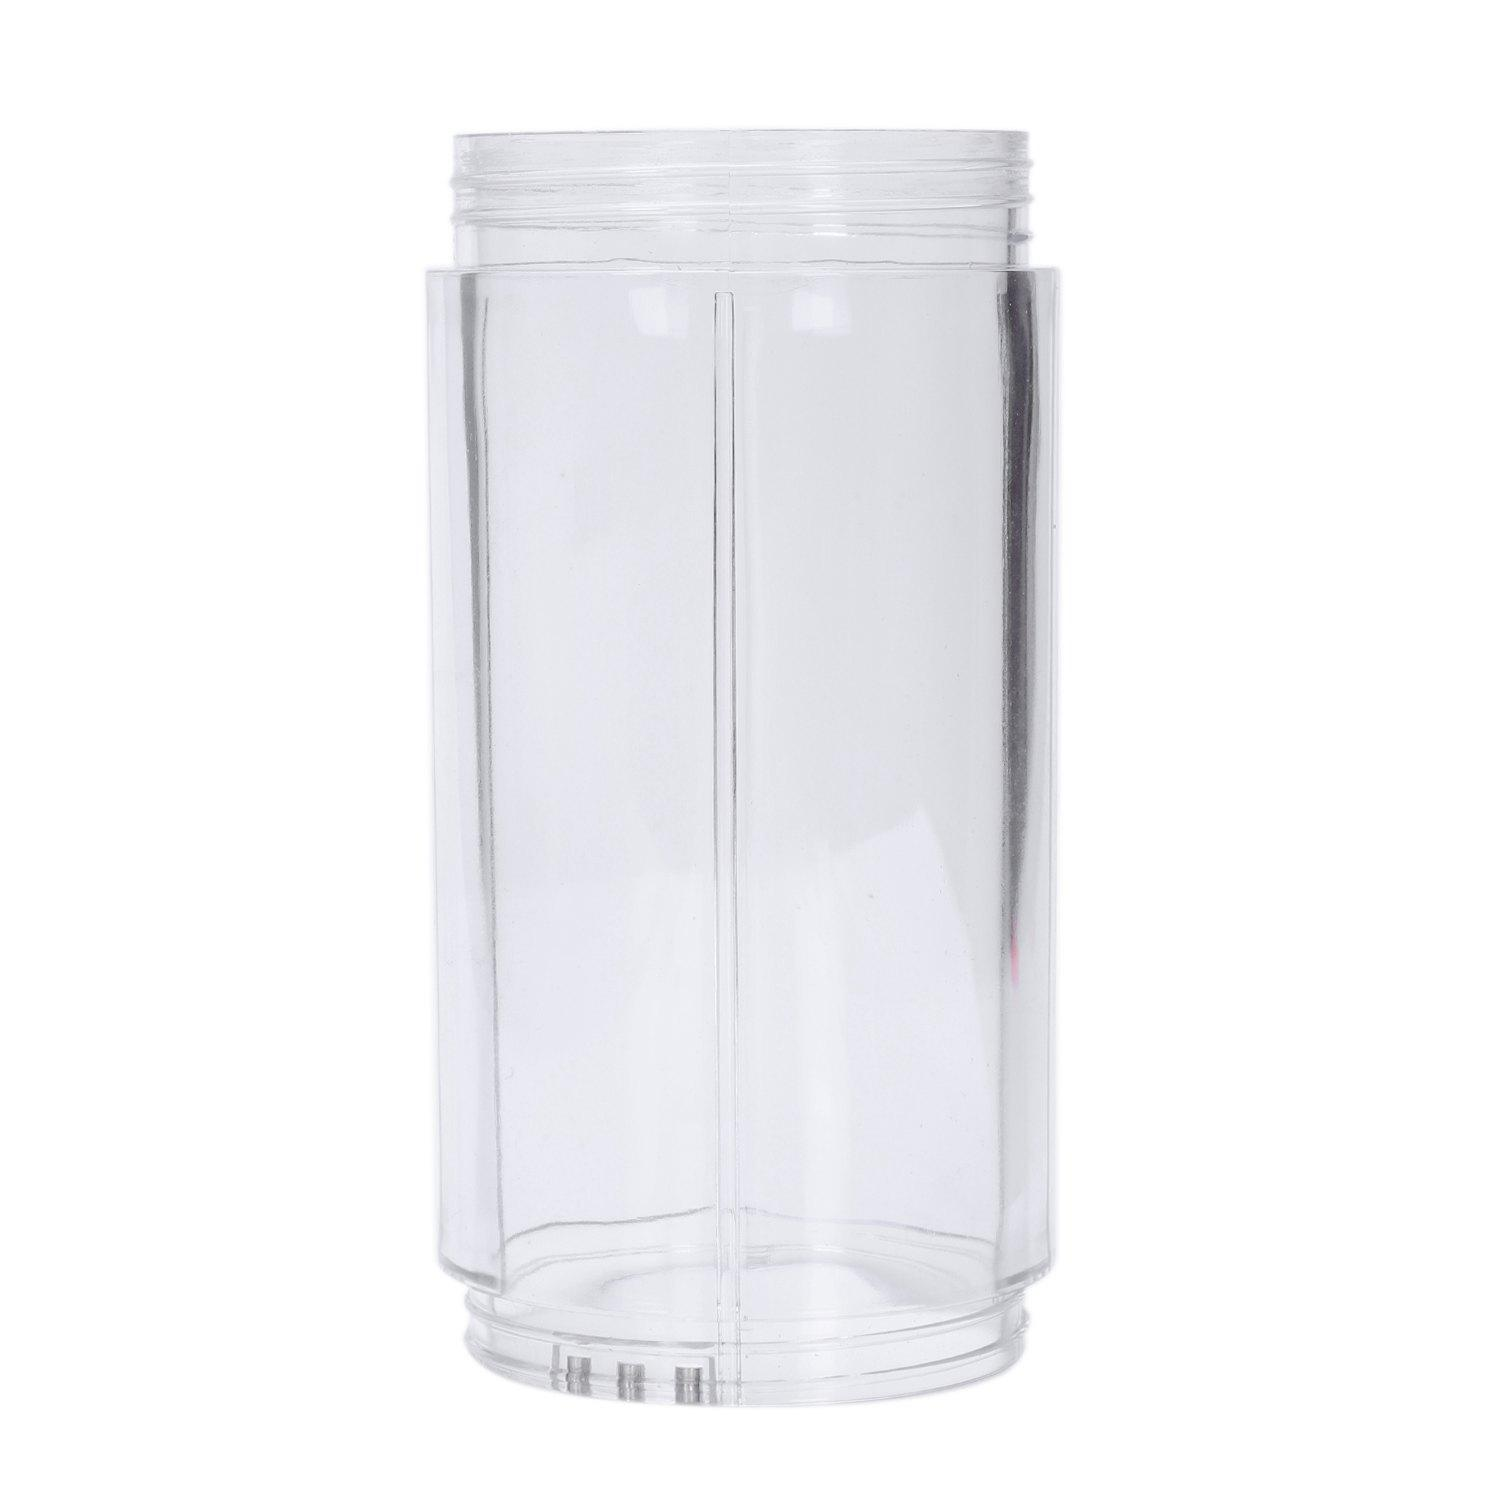 380ML Tall Cup Blender Juicer Mixer Accessory Replacement Part For